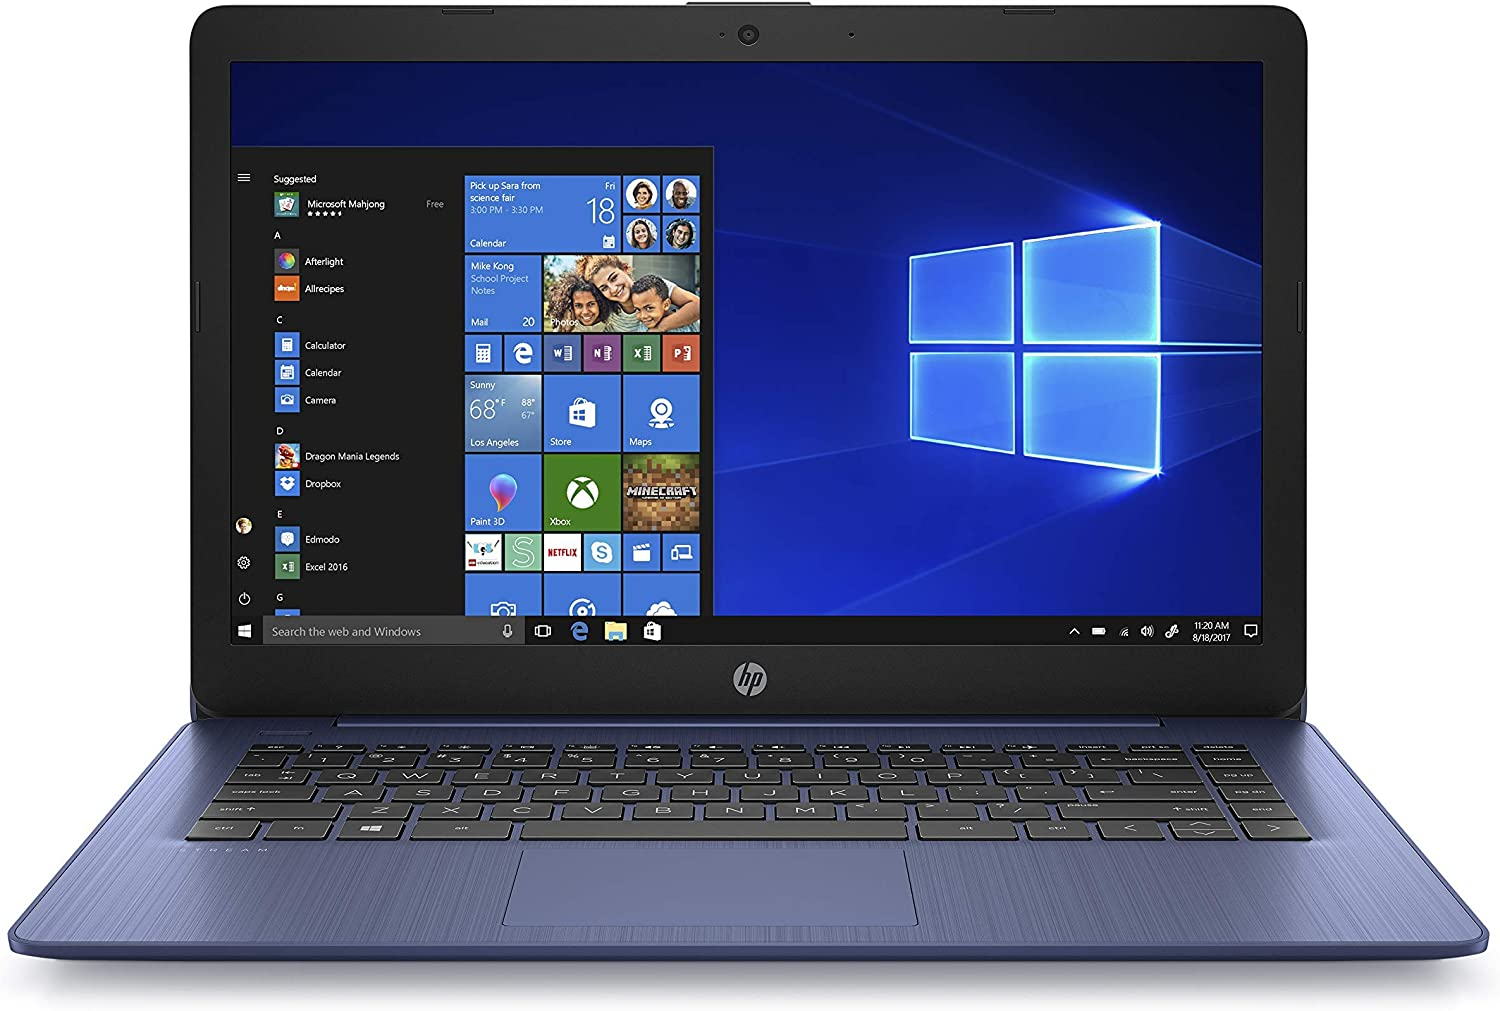 HP Stream 14-inch Laptop, AMD Dual-Core A4-9120E Processor, 4 GB SDRAM, 64 GB eMMC, Windows 10 Home in S Mode with Office 365 Personal for One Year (14-ds0050nr, Royal Blue) (Renewed)